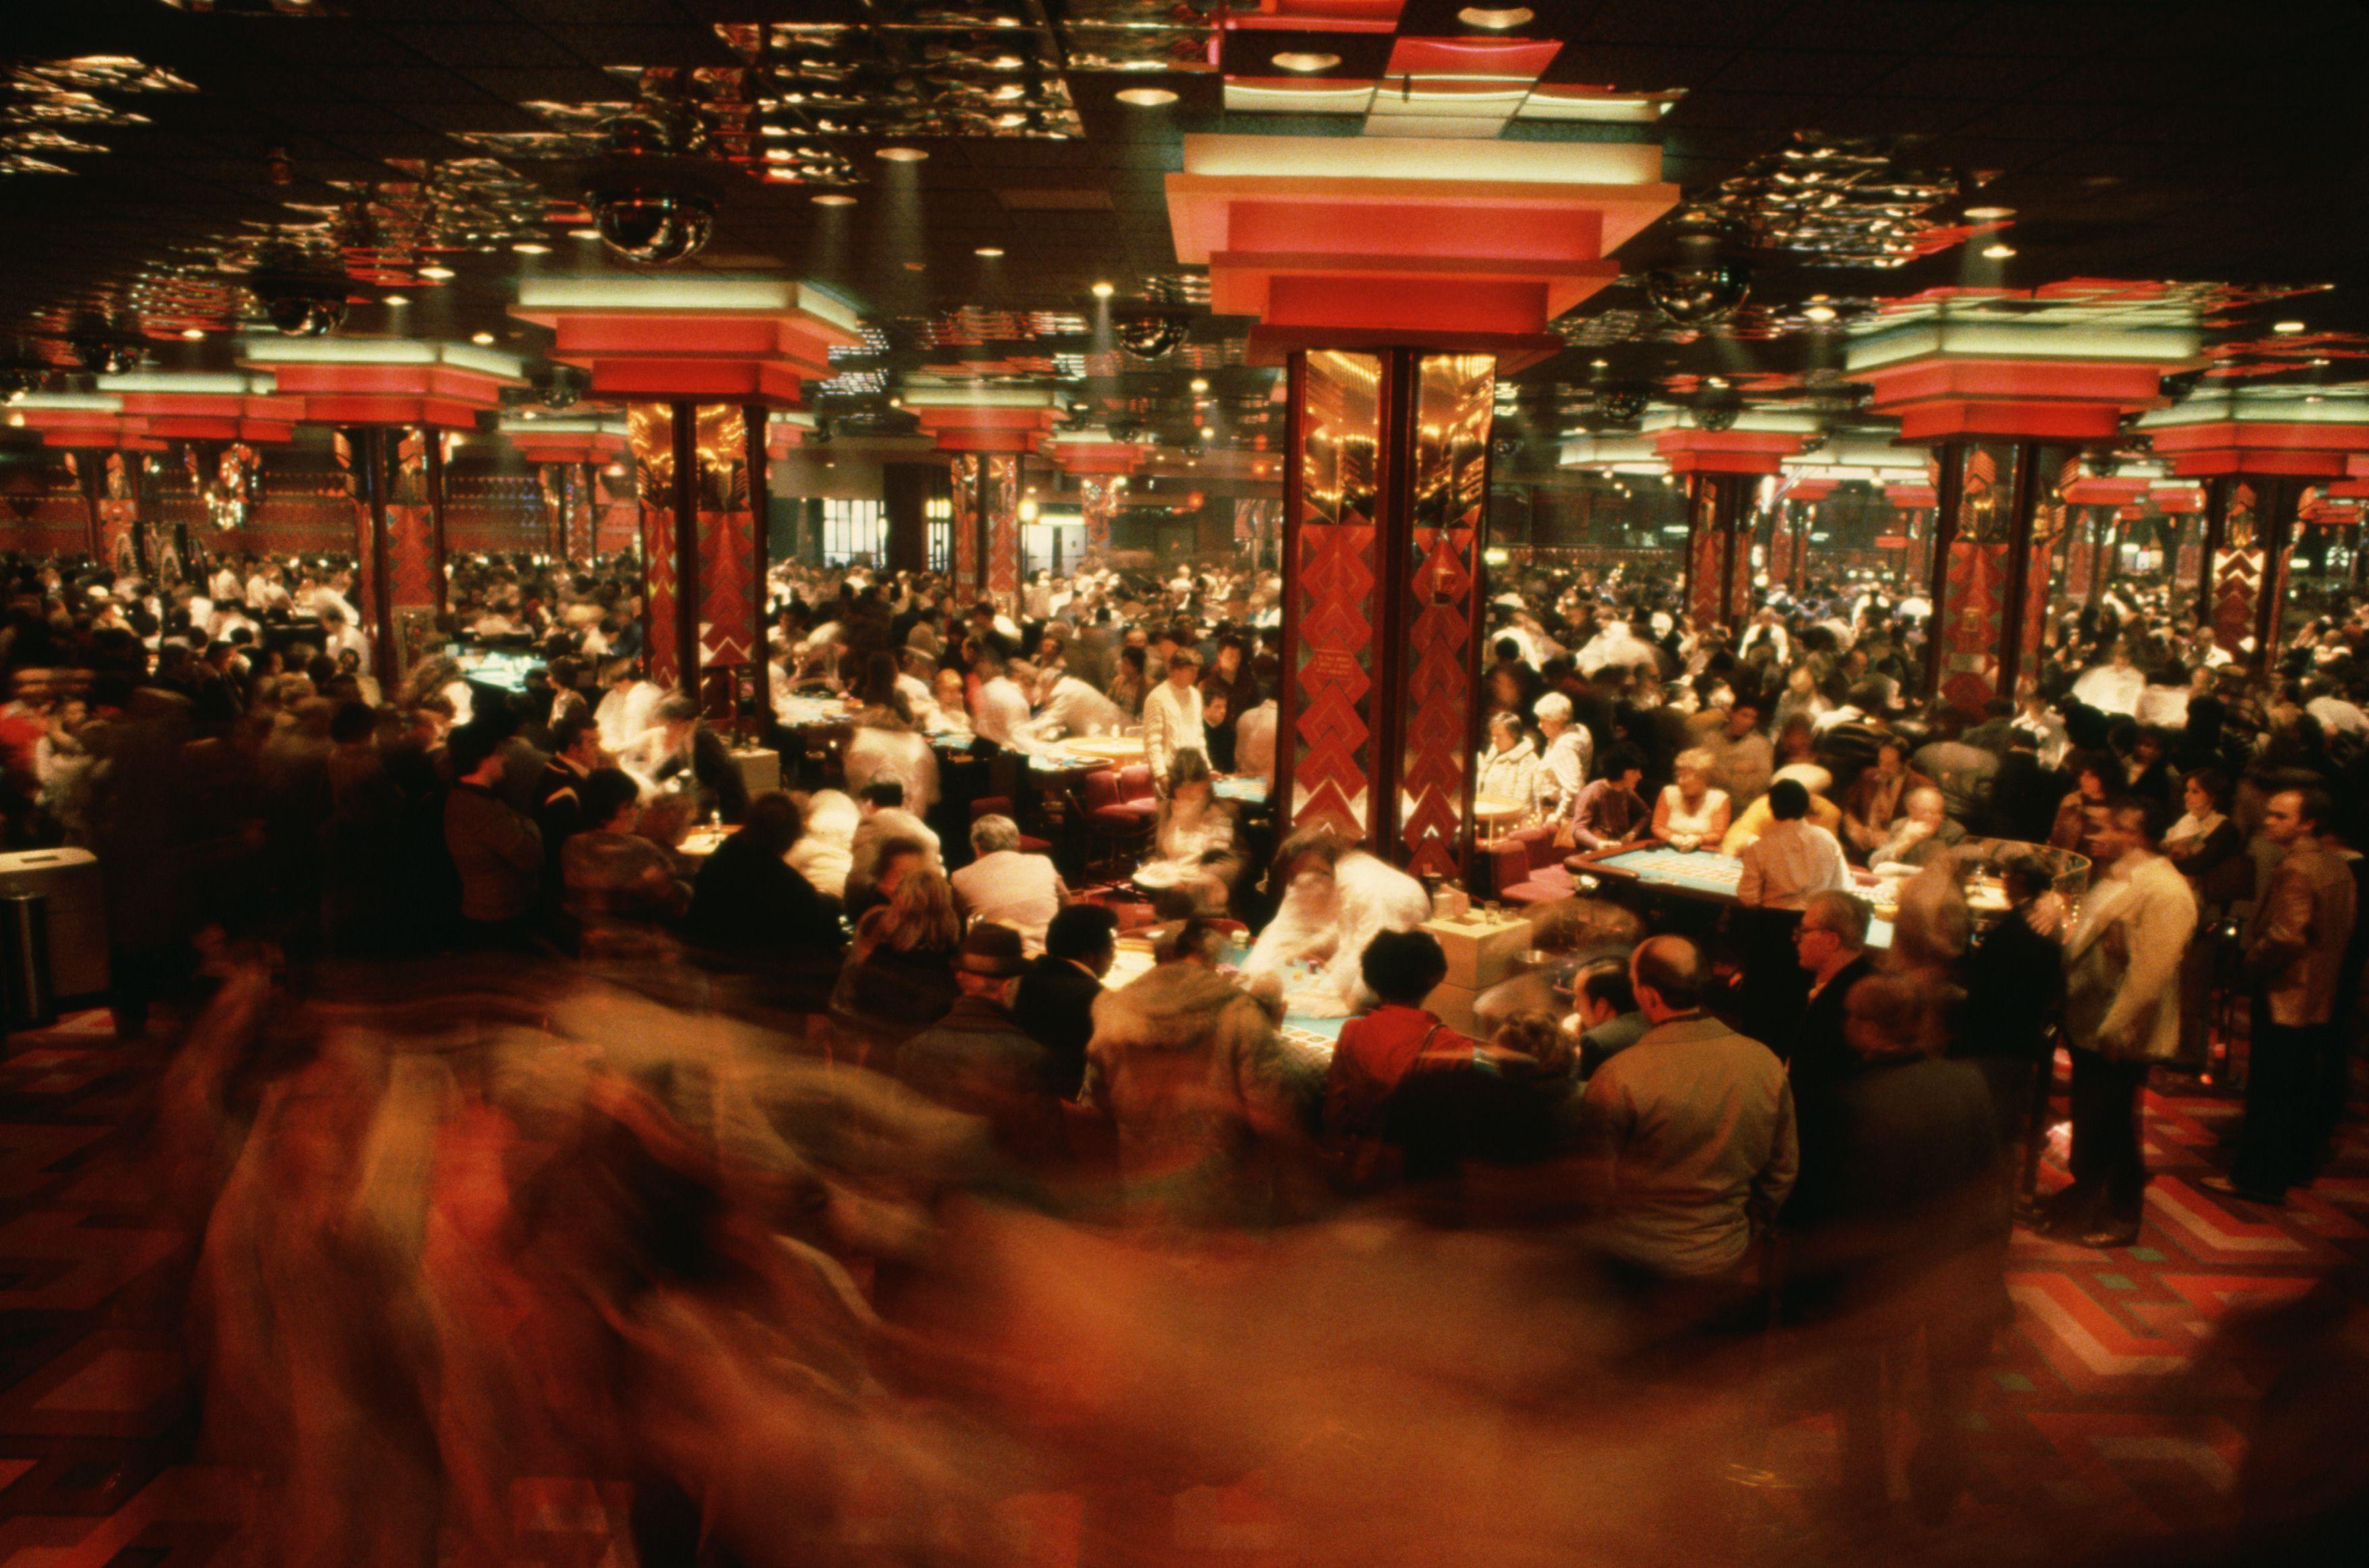 Hundreds of gamblers play roulette and other games on the floor of Caesars Casino in Atlantic City, New Jersey.   Location: Caesars Casino, Atlantic City, New Jersey, USA.